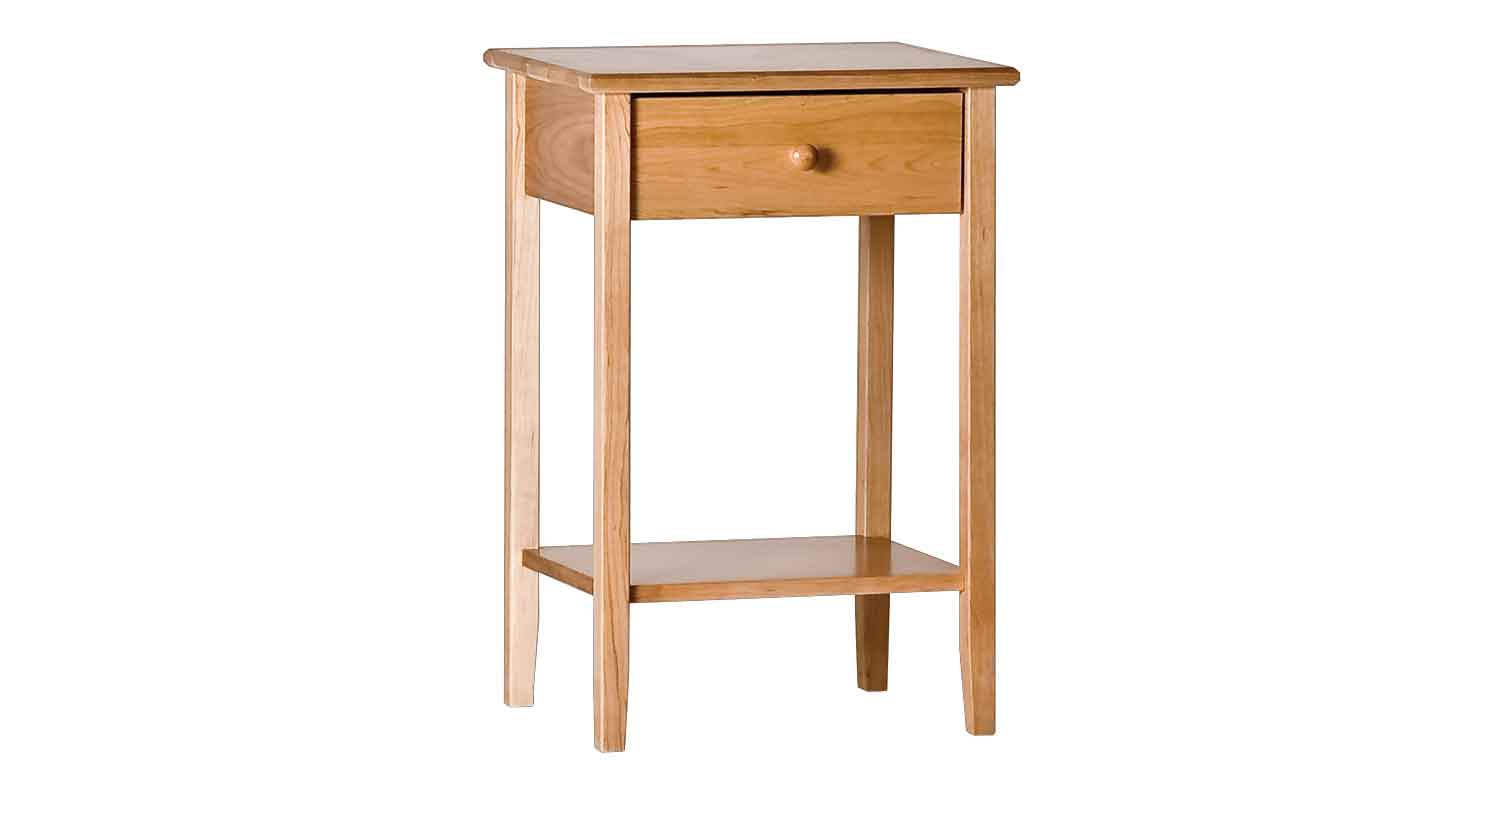 circle furniture shaker tall side table accent tables small outdoor seating person square dining wood metal end umbrella stand activity ashley chicago blue bedside lamps counter